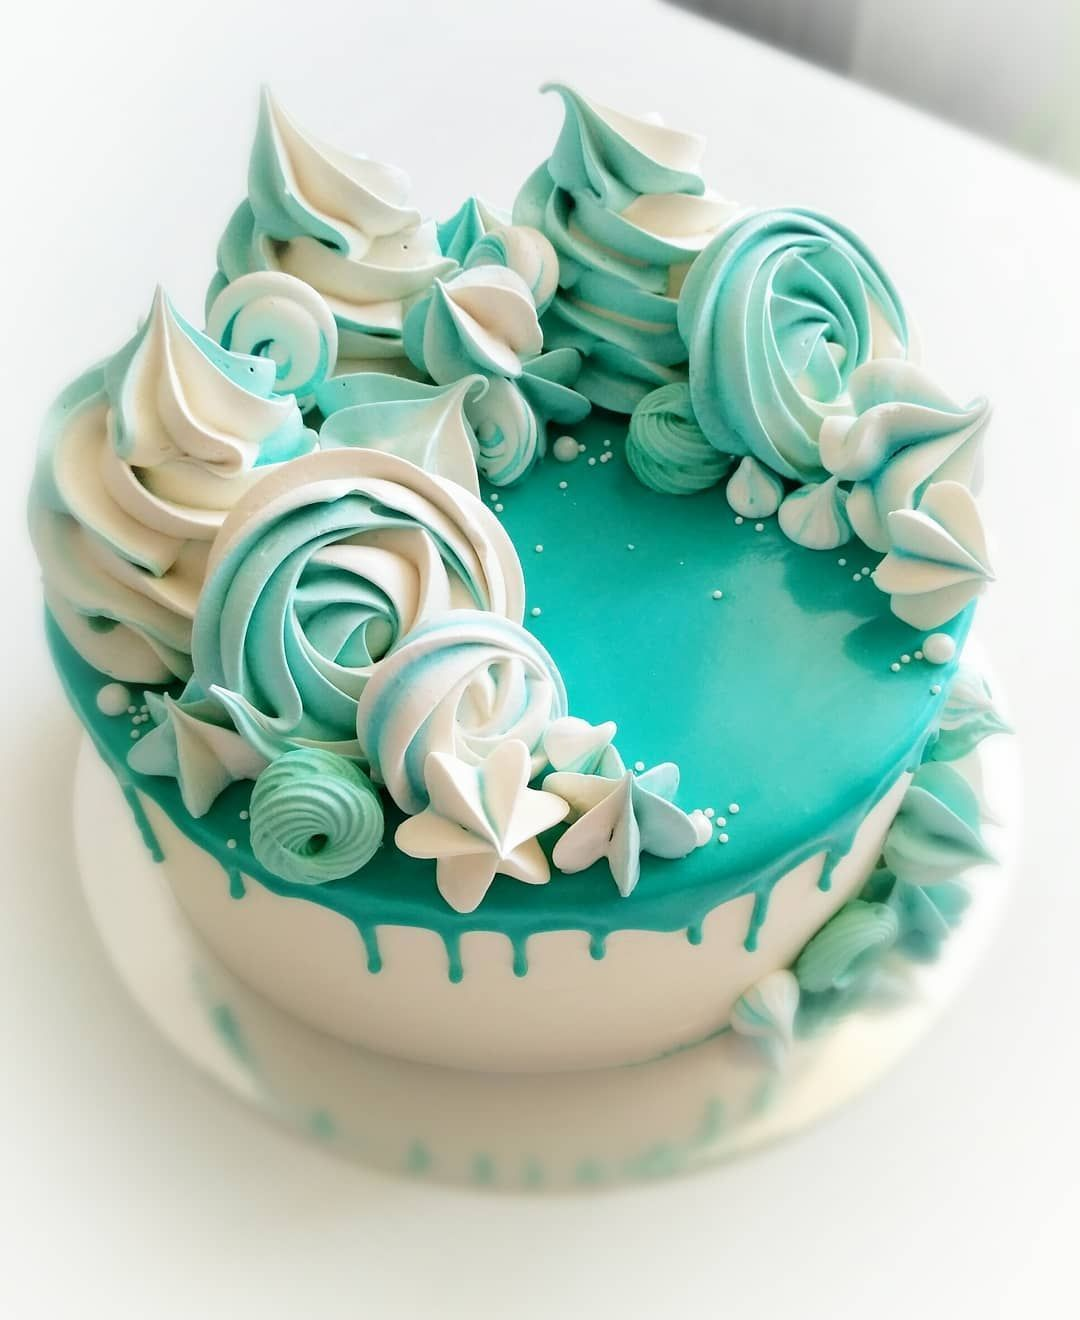 Simple Cake Decoration At Home